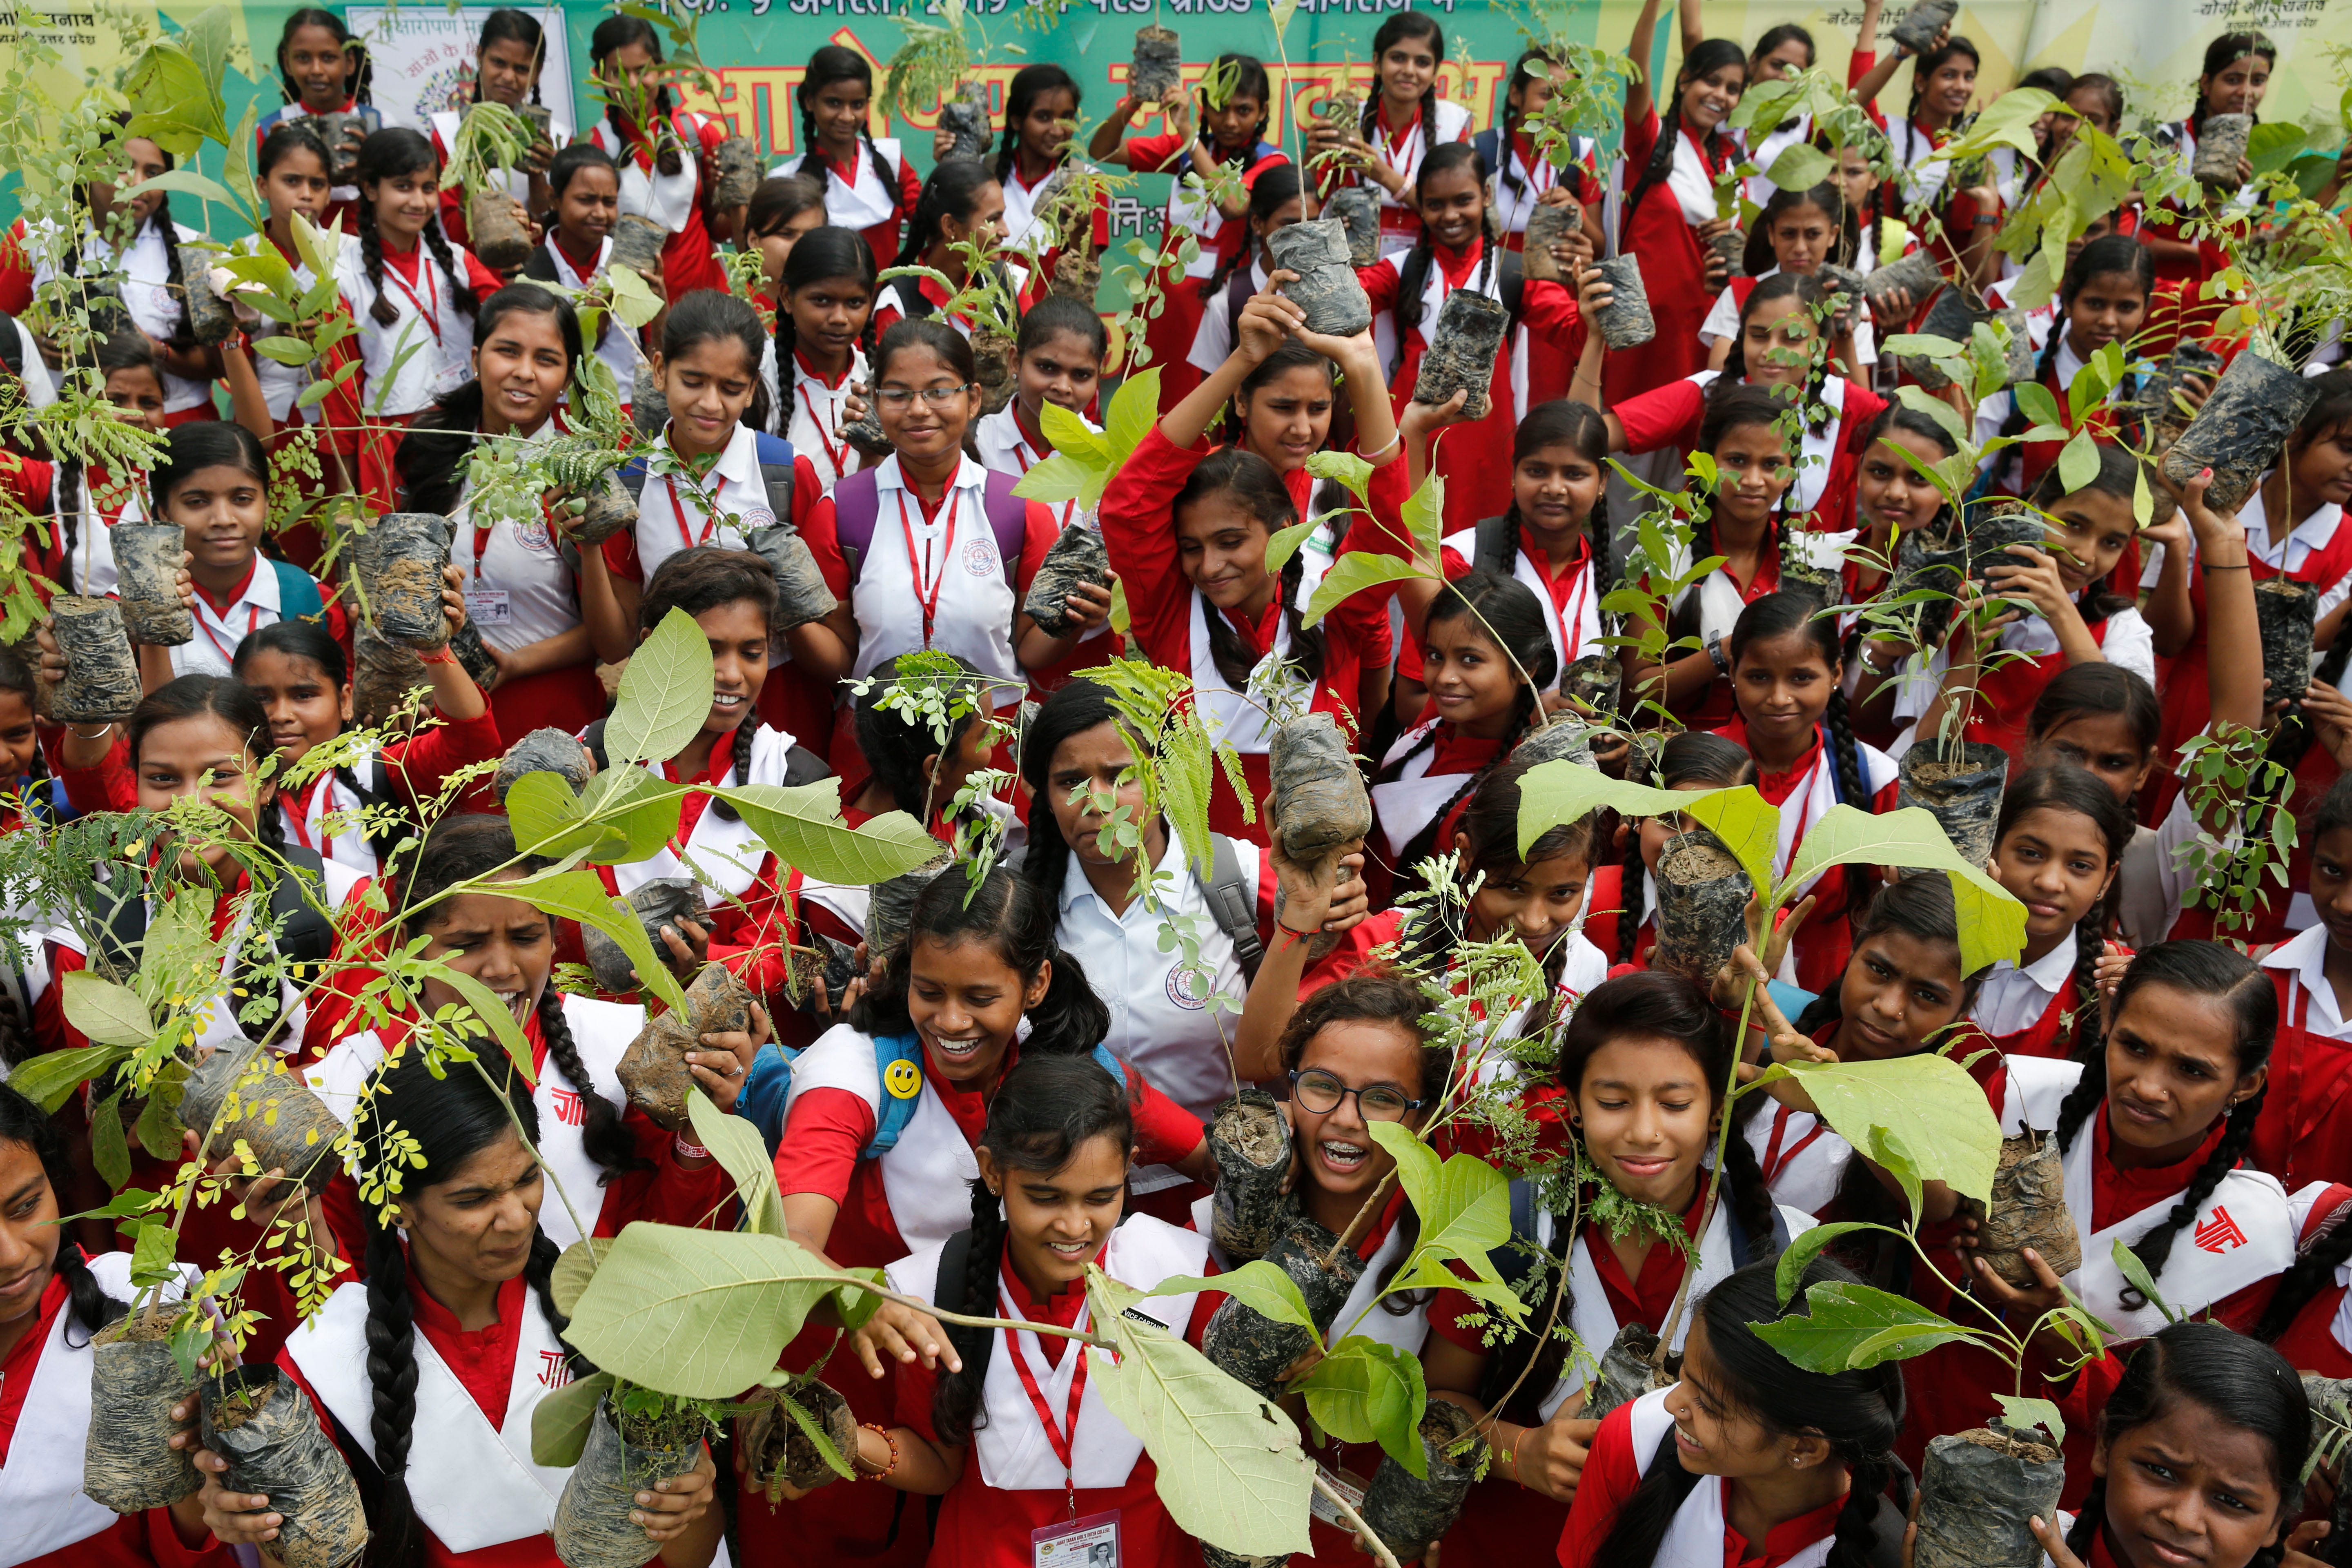 Indians plant 220 million trees in single day to combat climate change